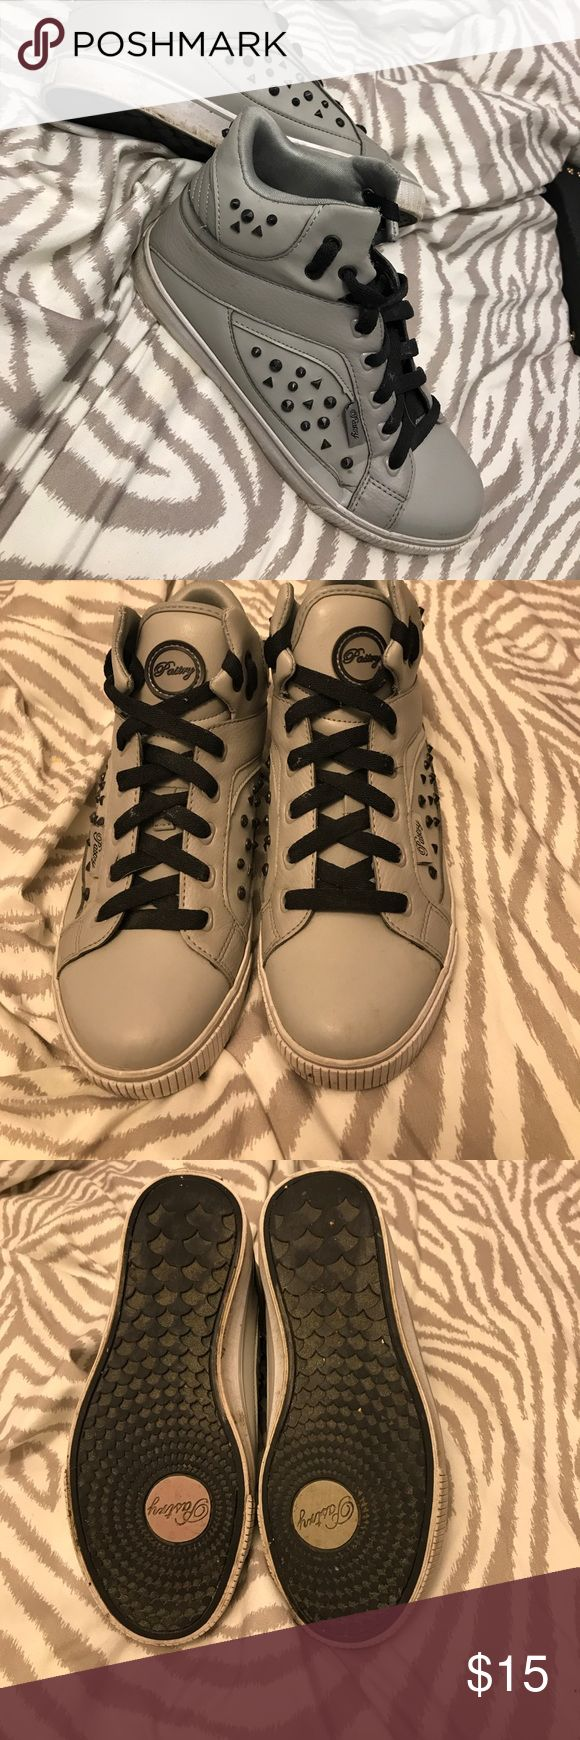 Pastry sneakers Worn. Good condition Shoes Sneakers